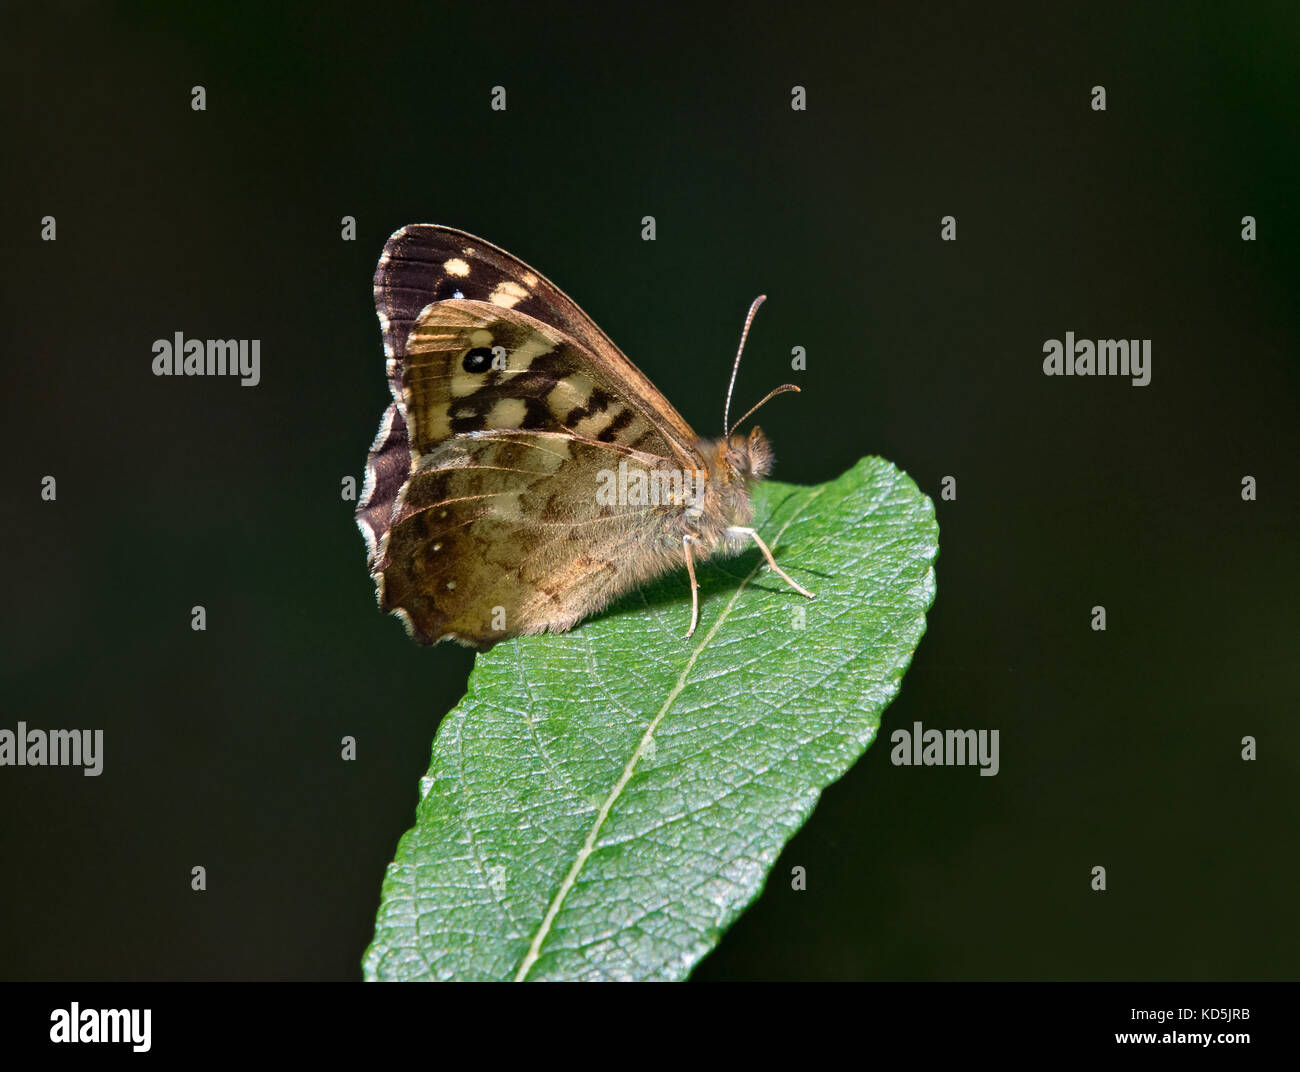 speckled wood butterfly, Pararge aegeria, resting on leaf with soft focus background, Dorset, UK - Stock Image